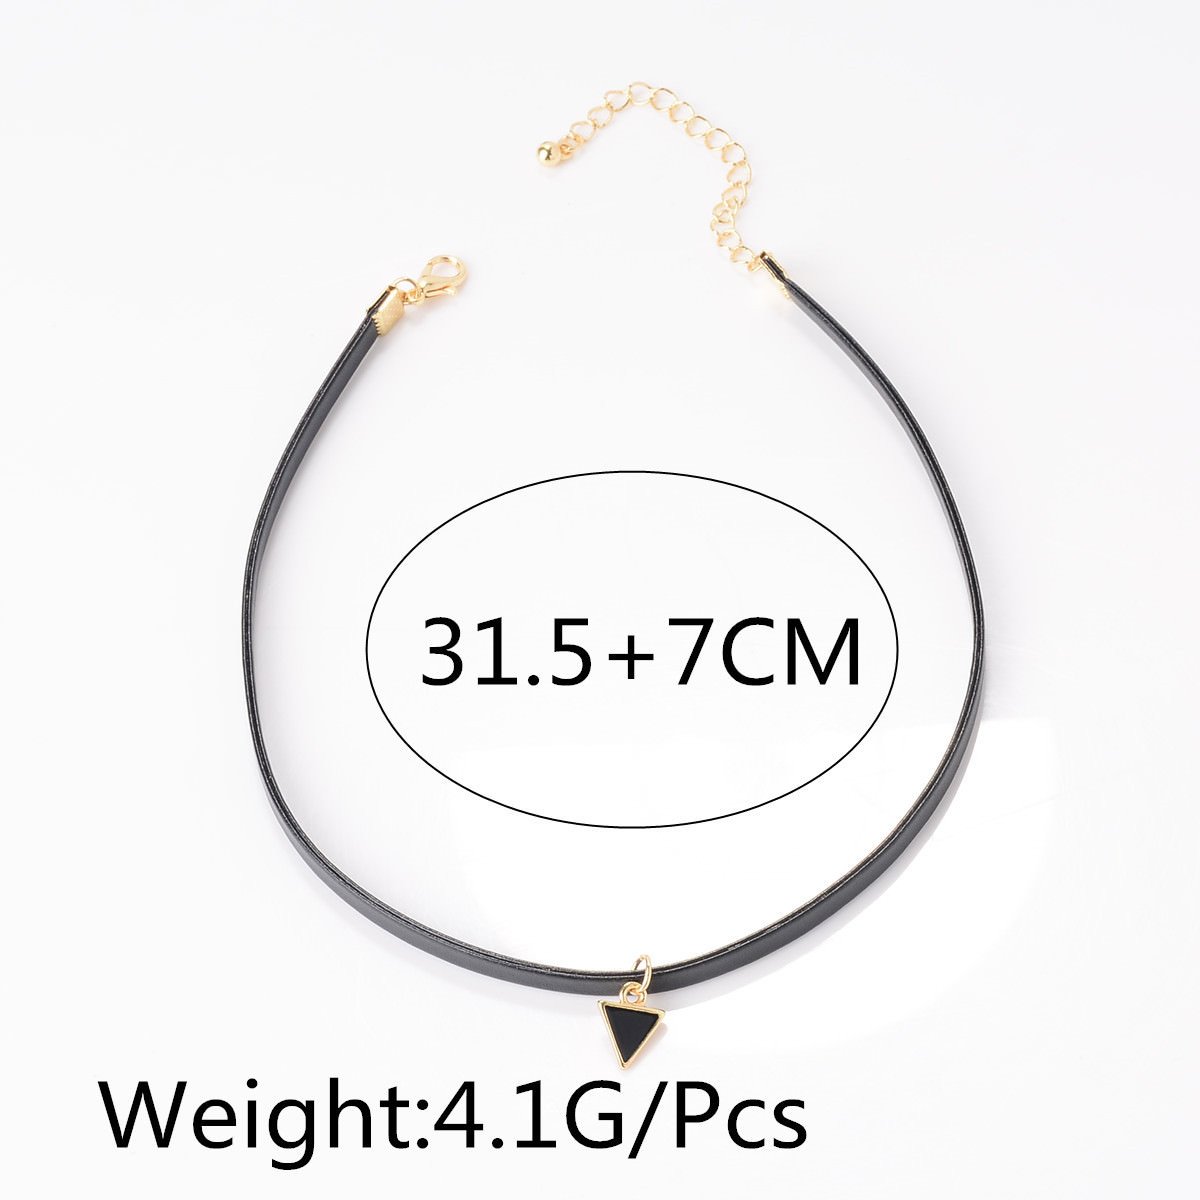 5028-2c875074ffb6e2f2a2d693c32acc6810 Trendy Punk Style Leather Rope Choker Necklace With Triangle Pendant